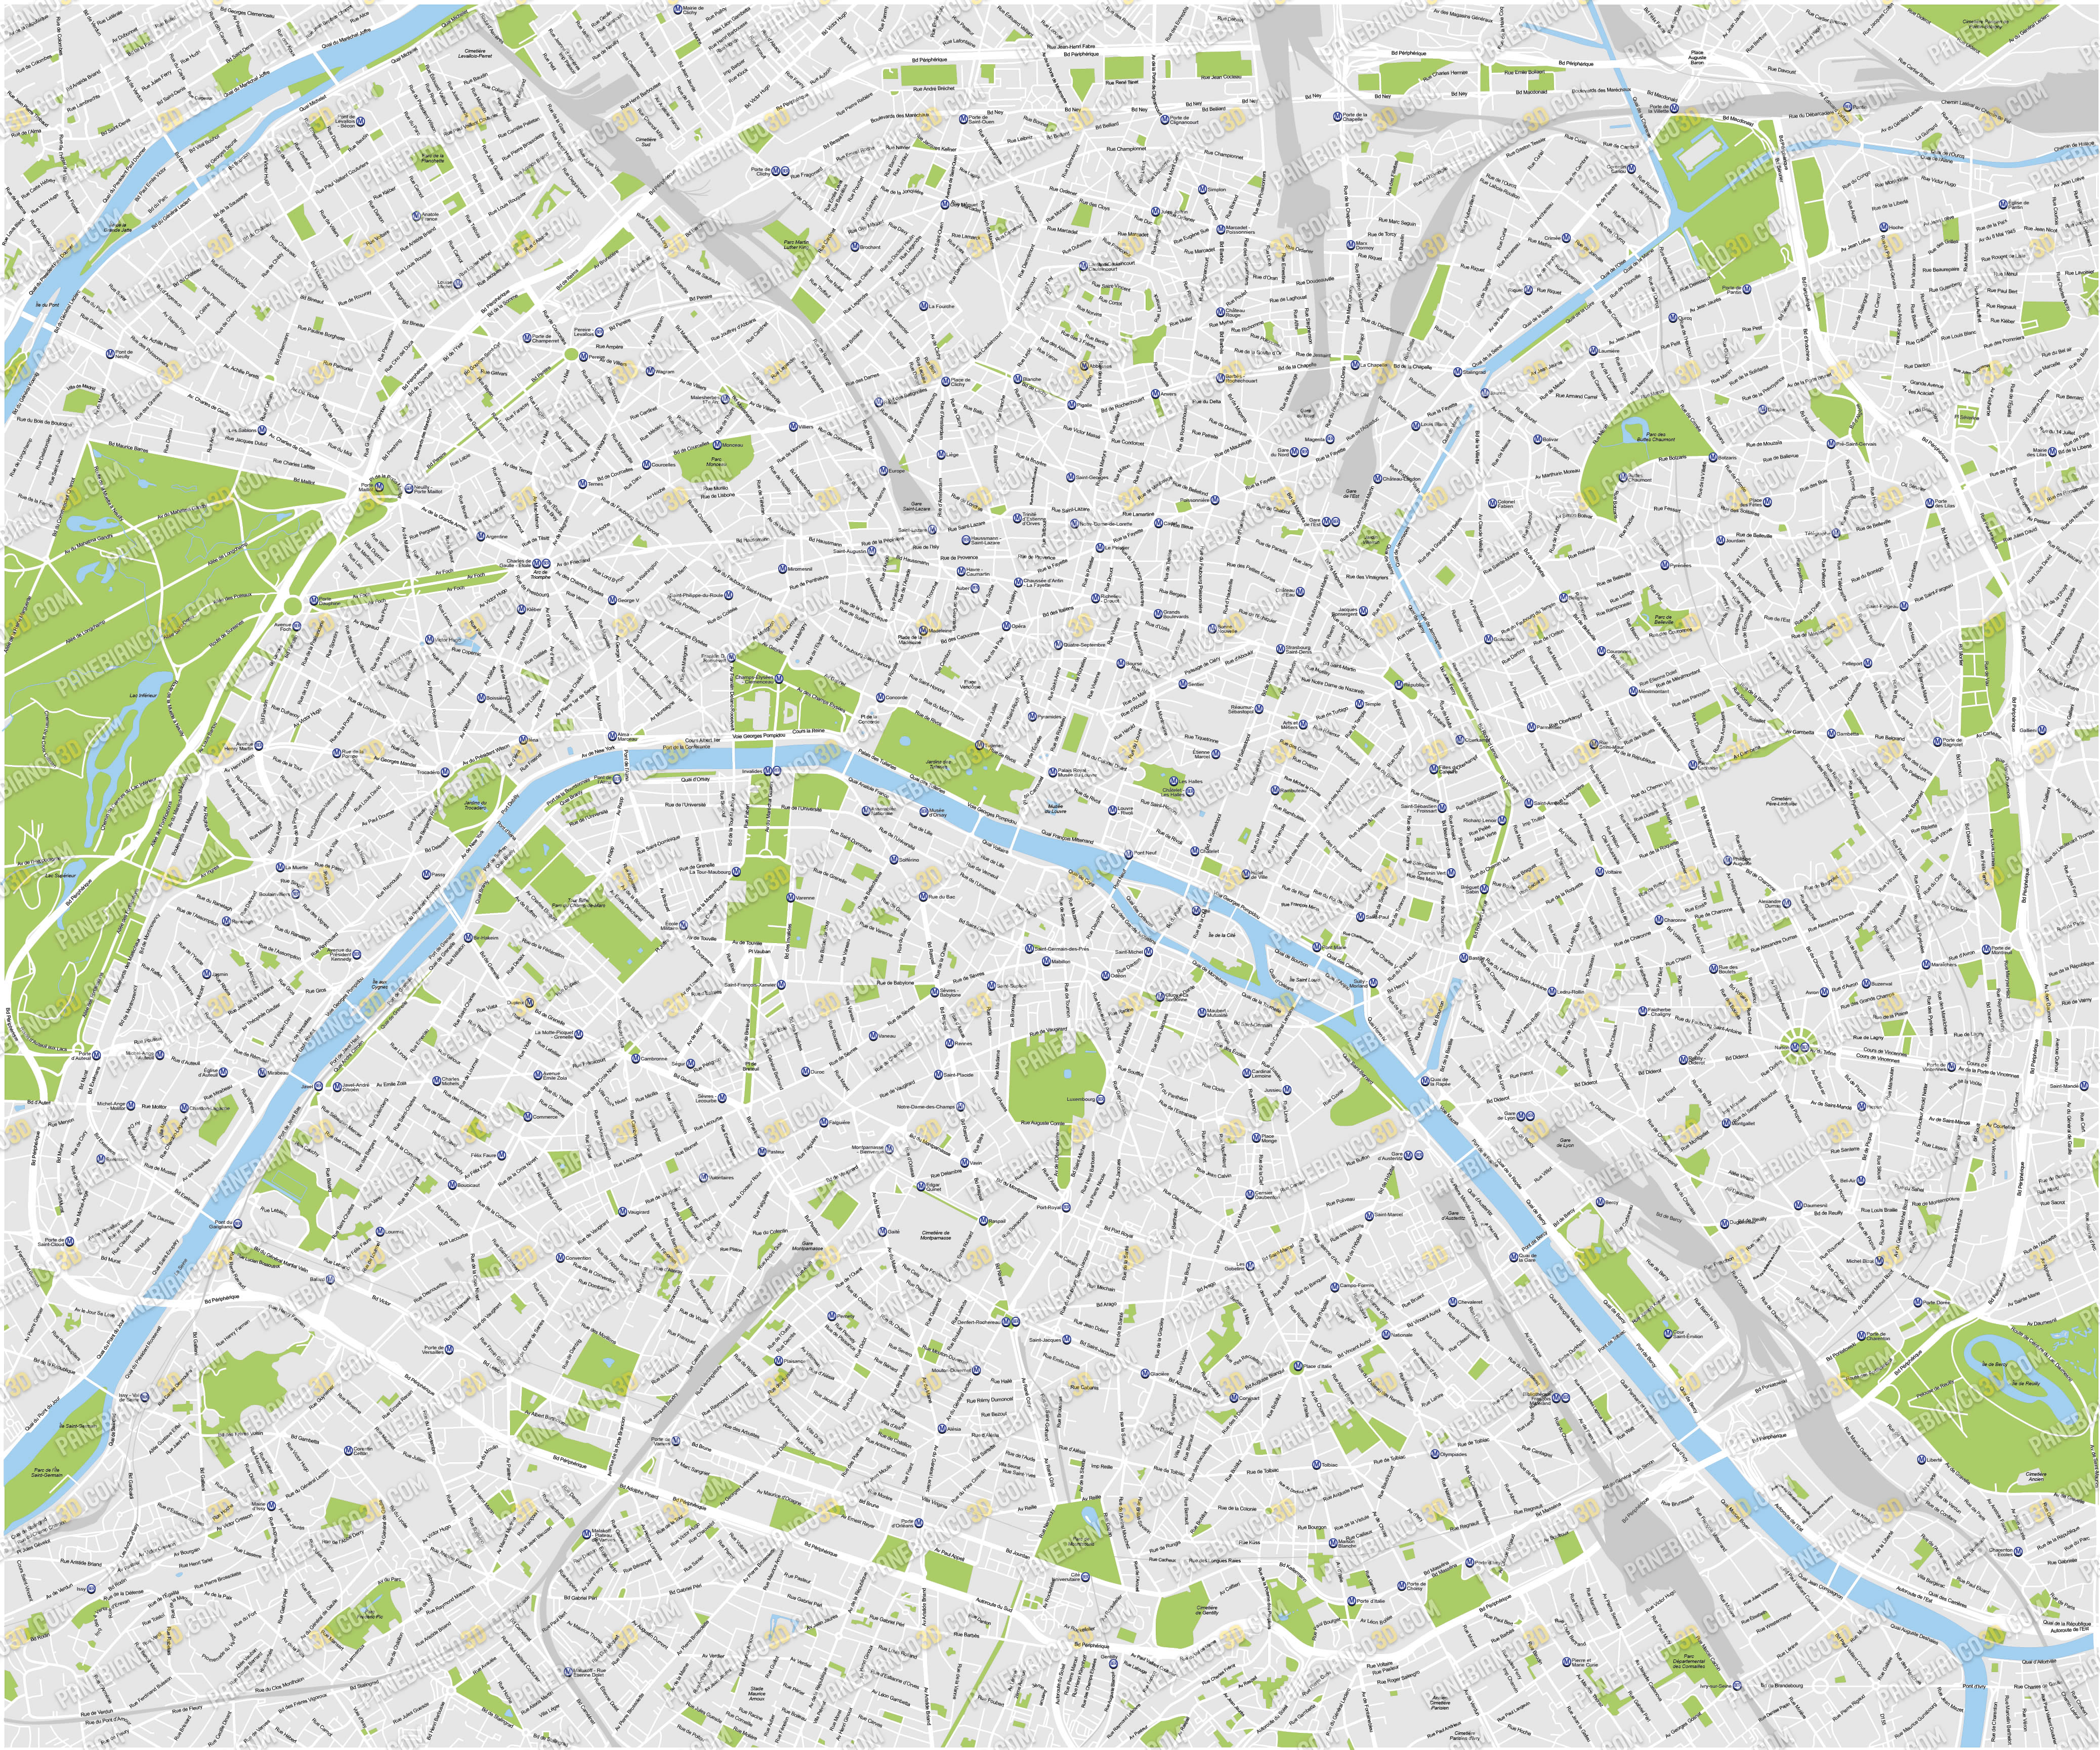 Paris vector city map, a high resolution scalable map in ... on hand drawn city map, design city map, city center map, dragon city map, graphic city map, imperial city map, new york city road map, photoshop tutorial city map, art city map, hudson city map, tech city map, custom city map, mega city map, eagle city map,